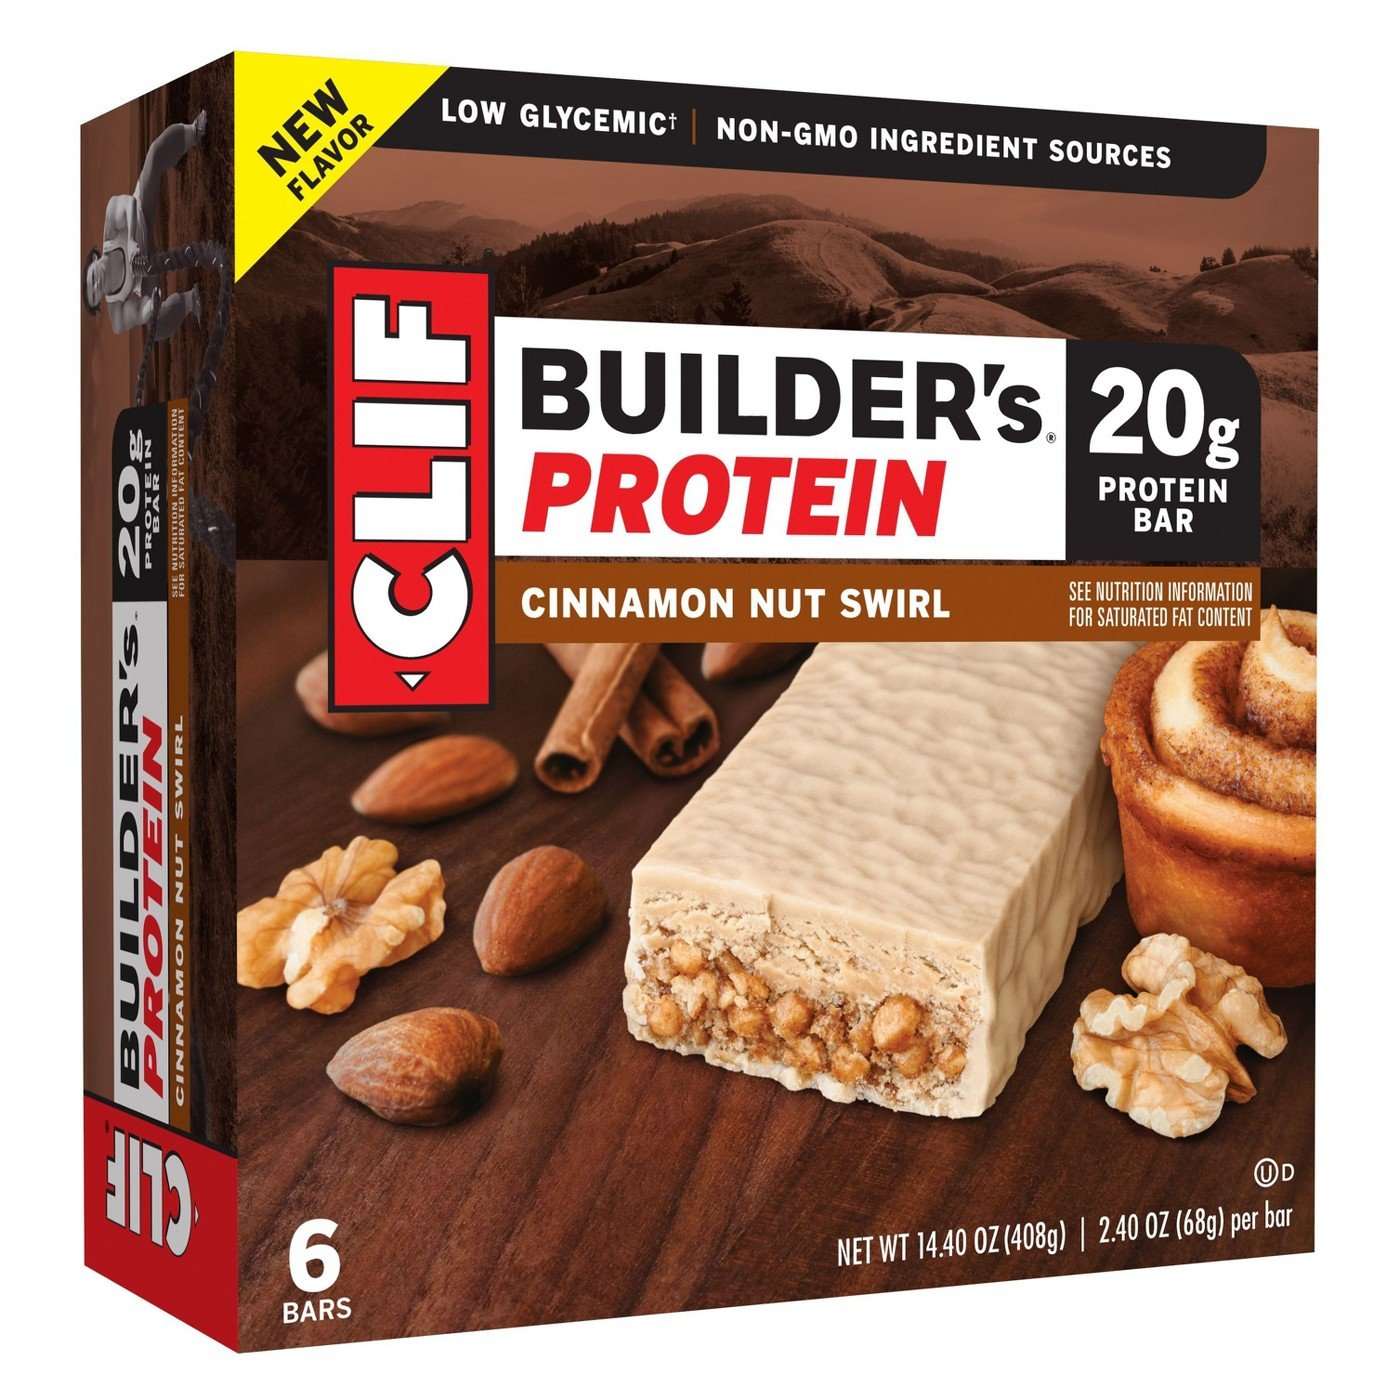 Clif Builder s Protein Bar Cinnamon Nut Swirl 14.4oz 2.4oz x 6 bars , pack of 1